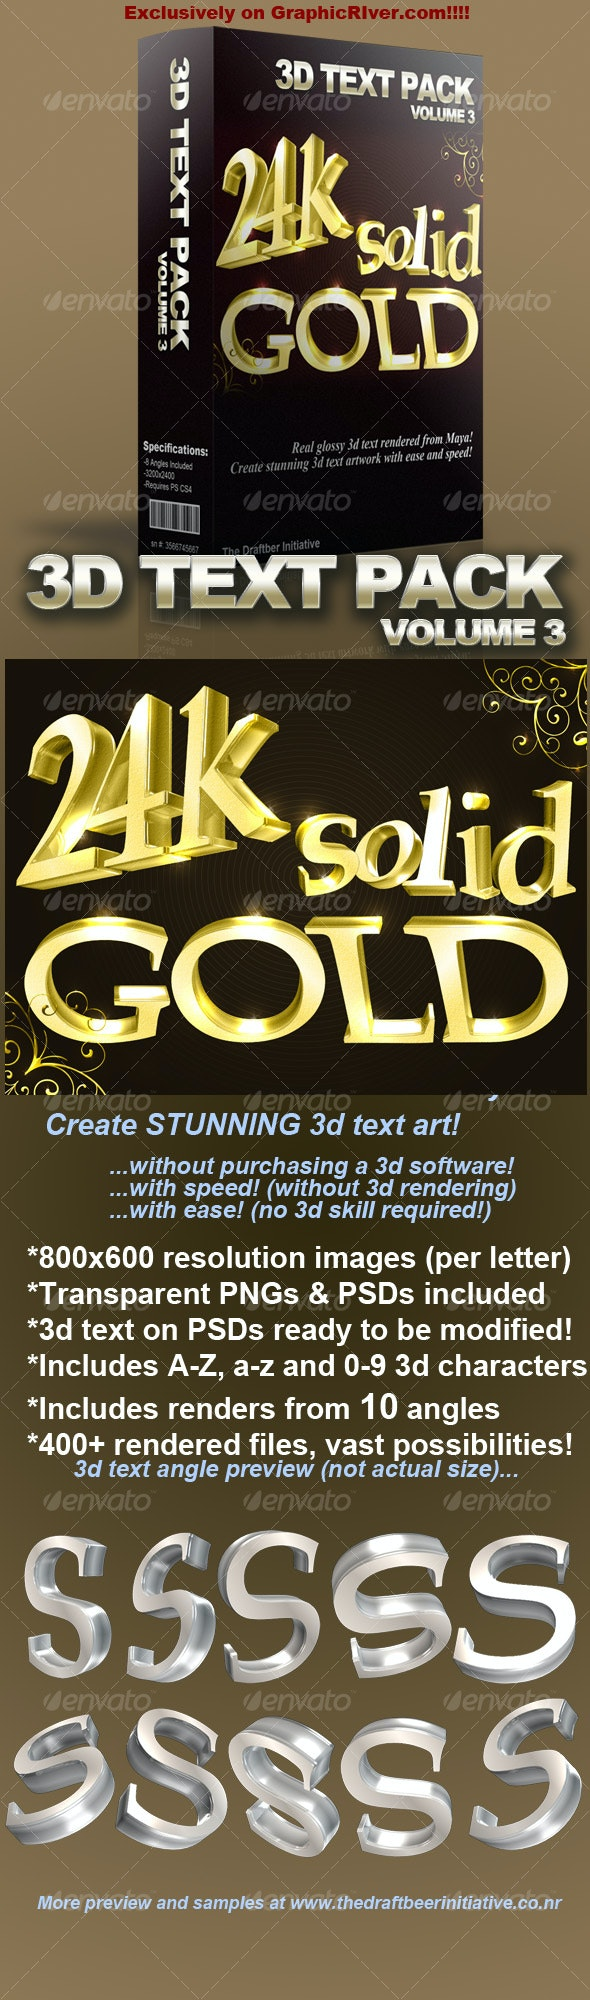 Glossy 3D Text Pack Volume 3 - 3D Backgrounds